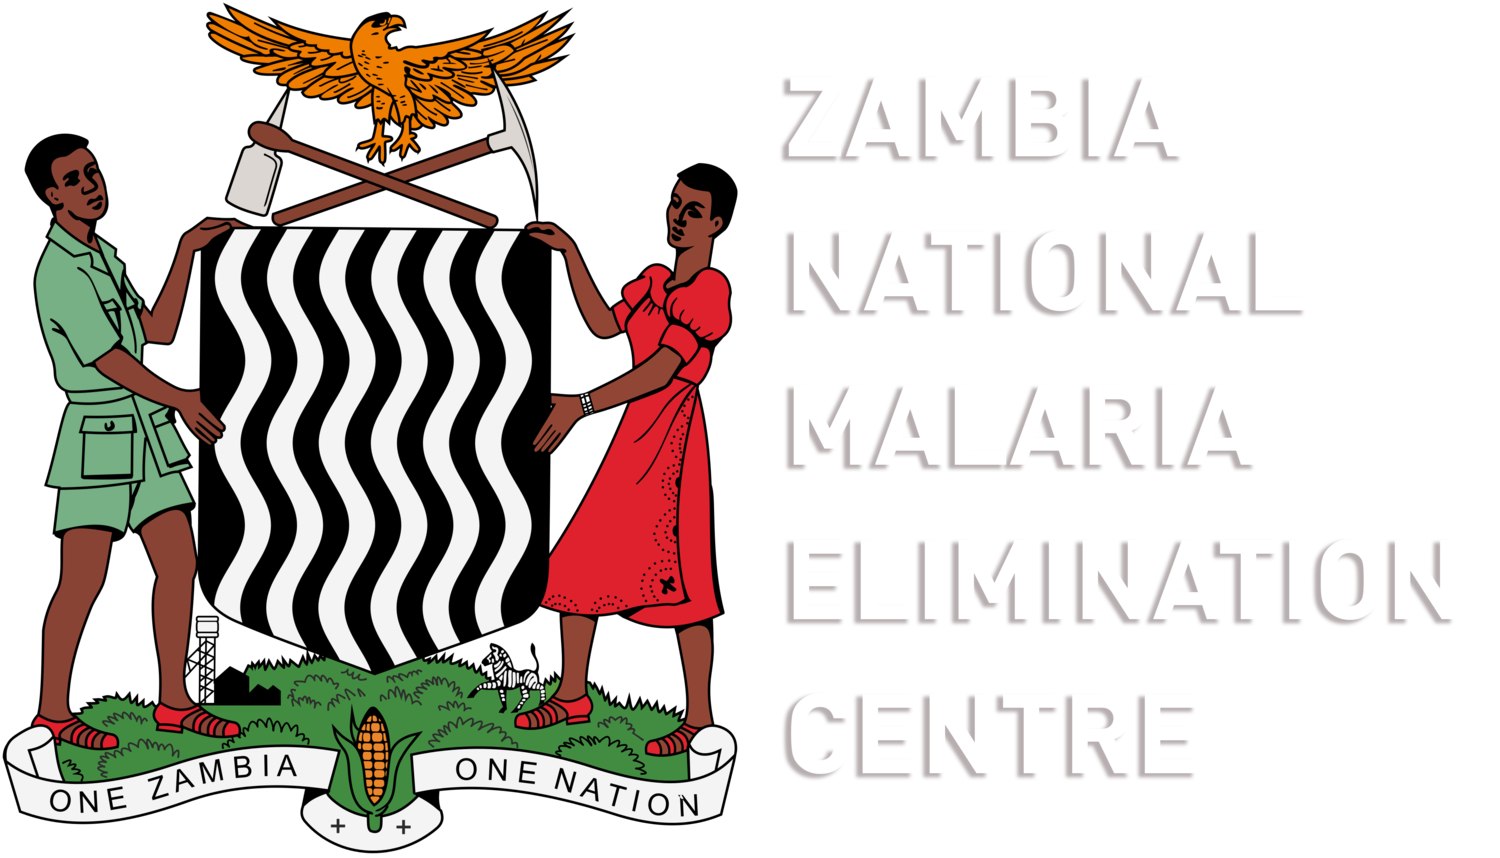 Zambia National Malaria Elimination Centre